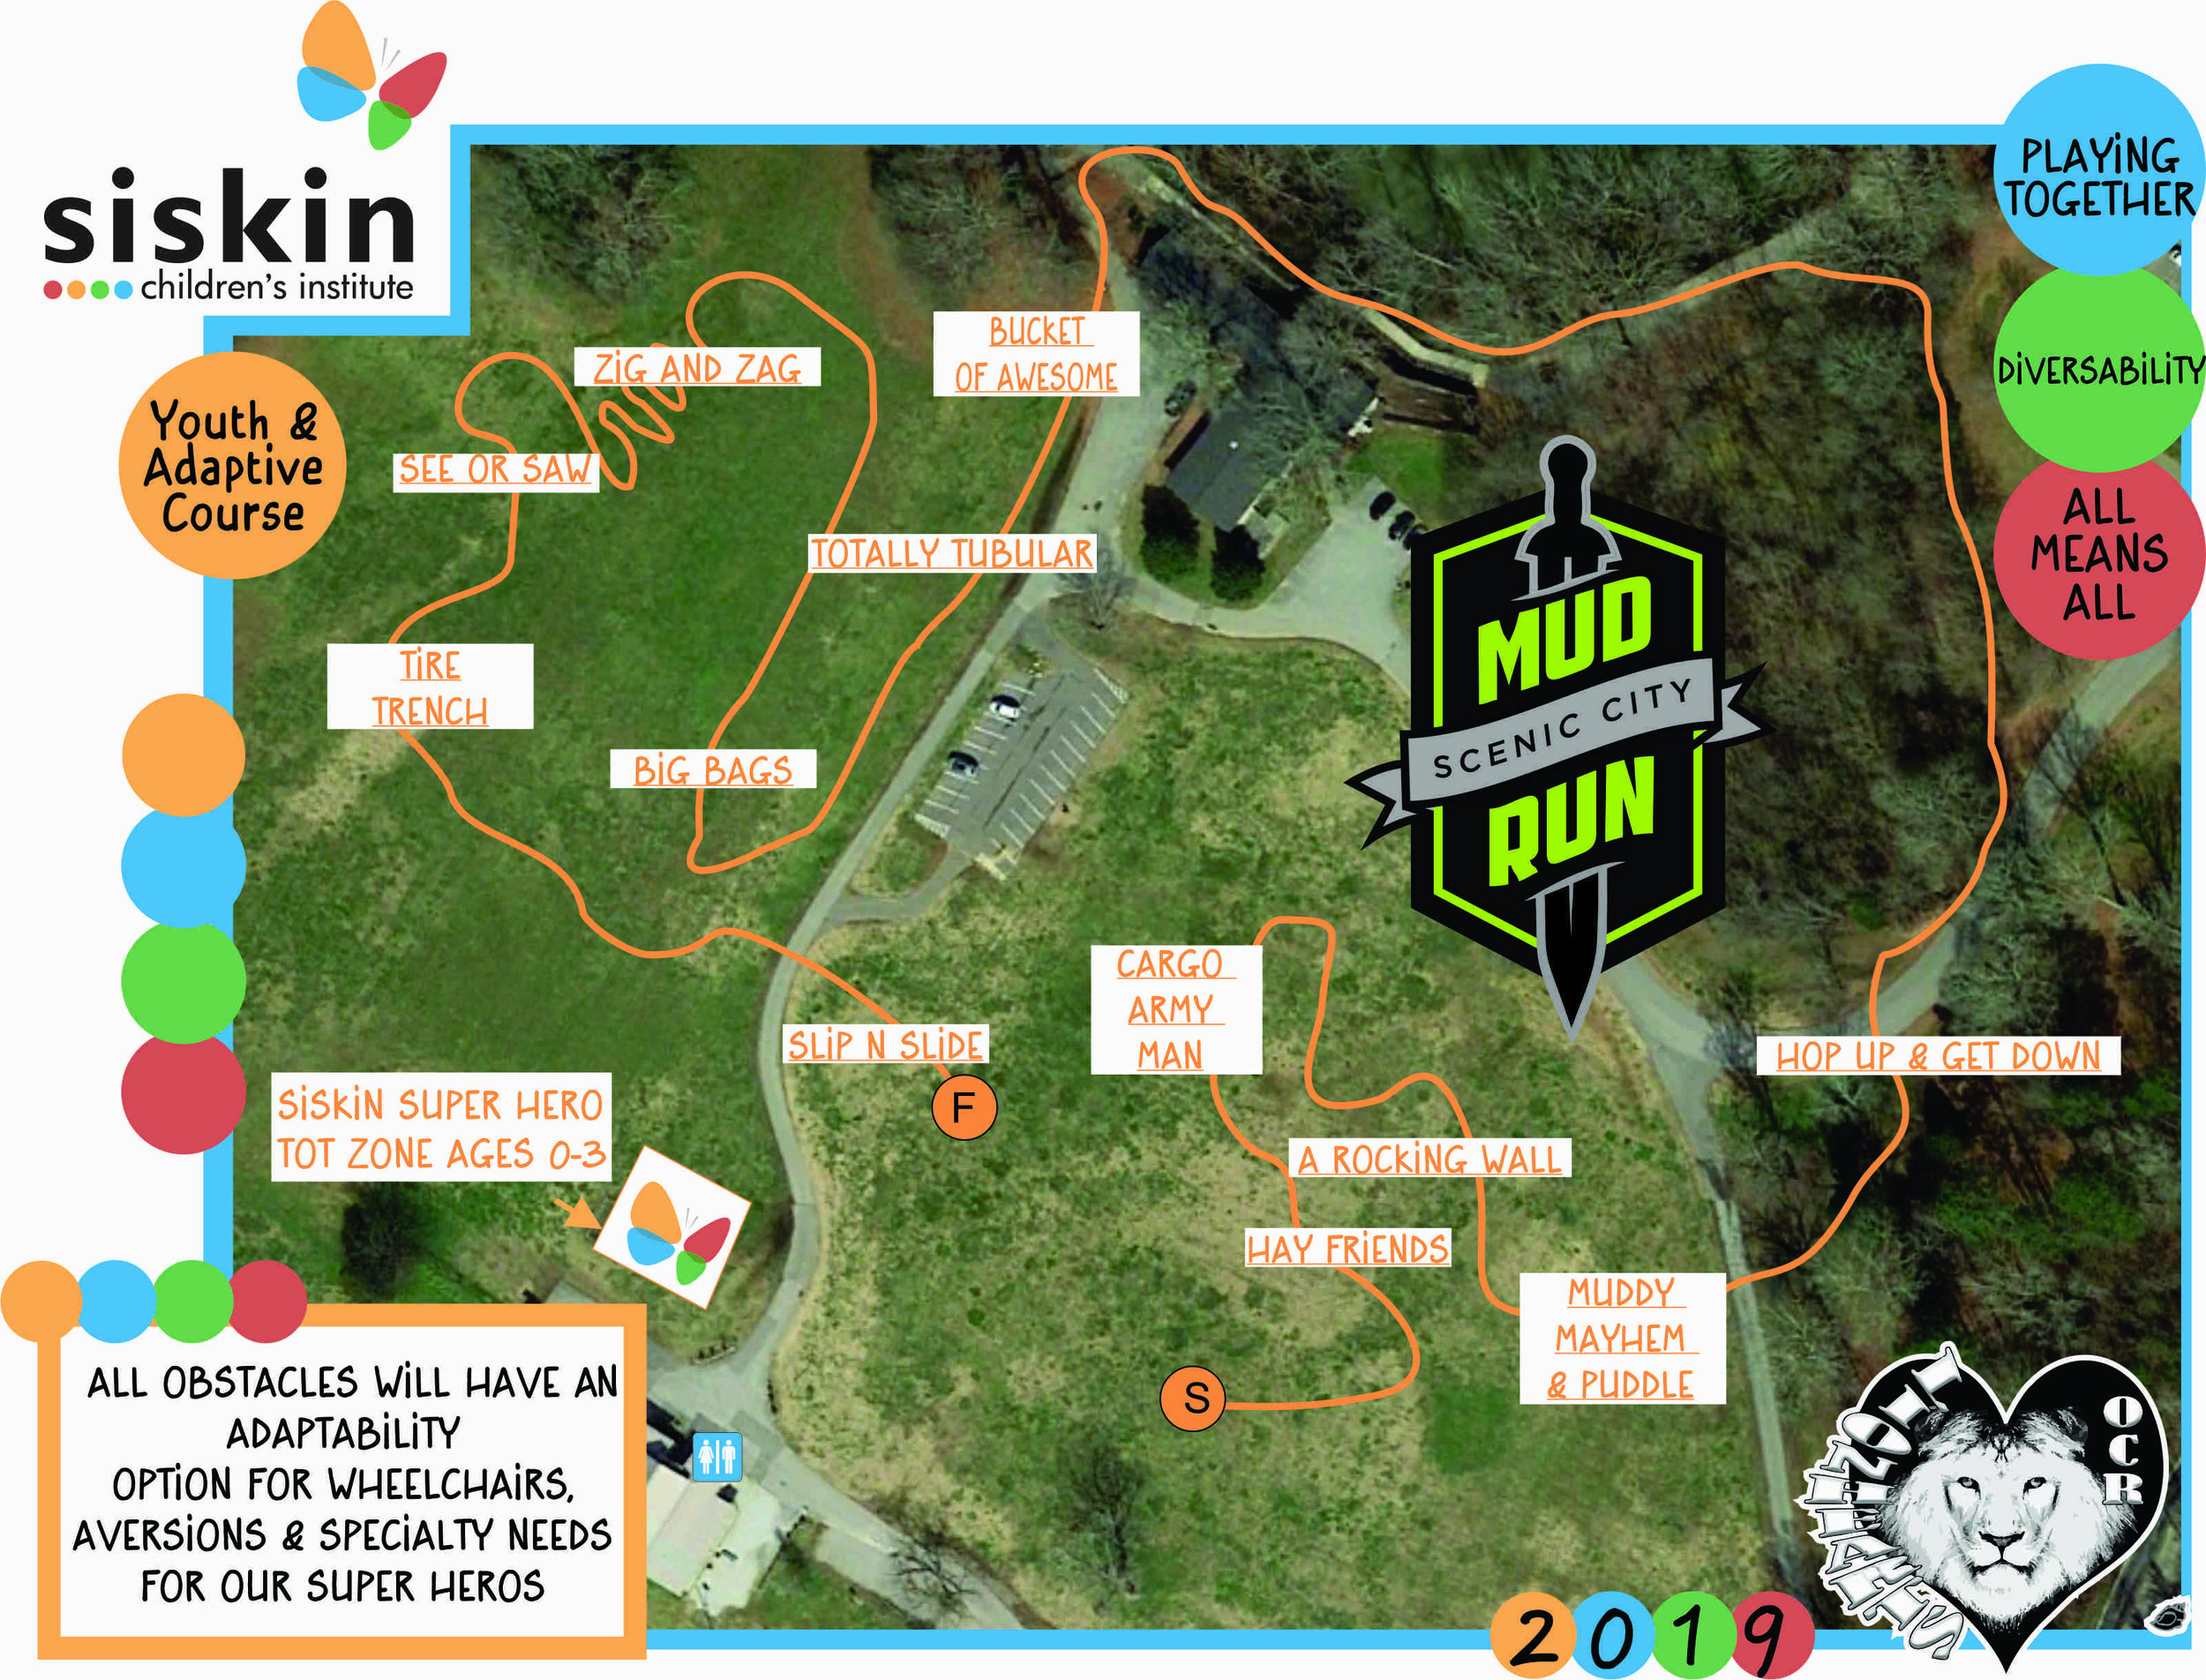 2019 Scenic City Mud Run Kids Course.jpg